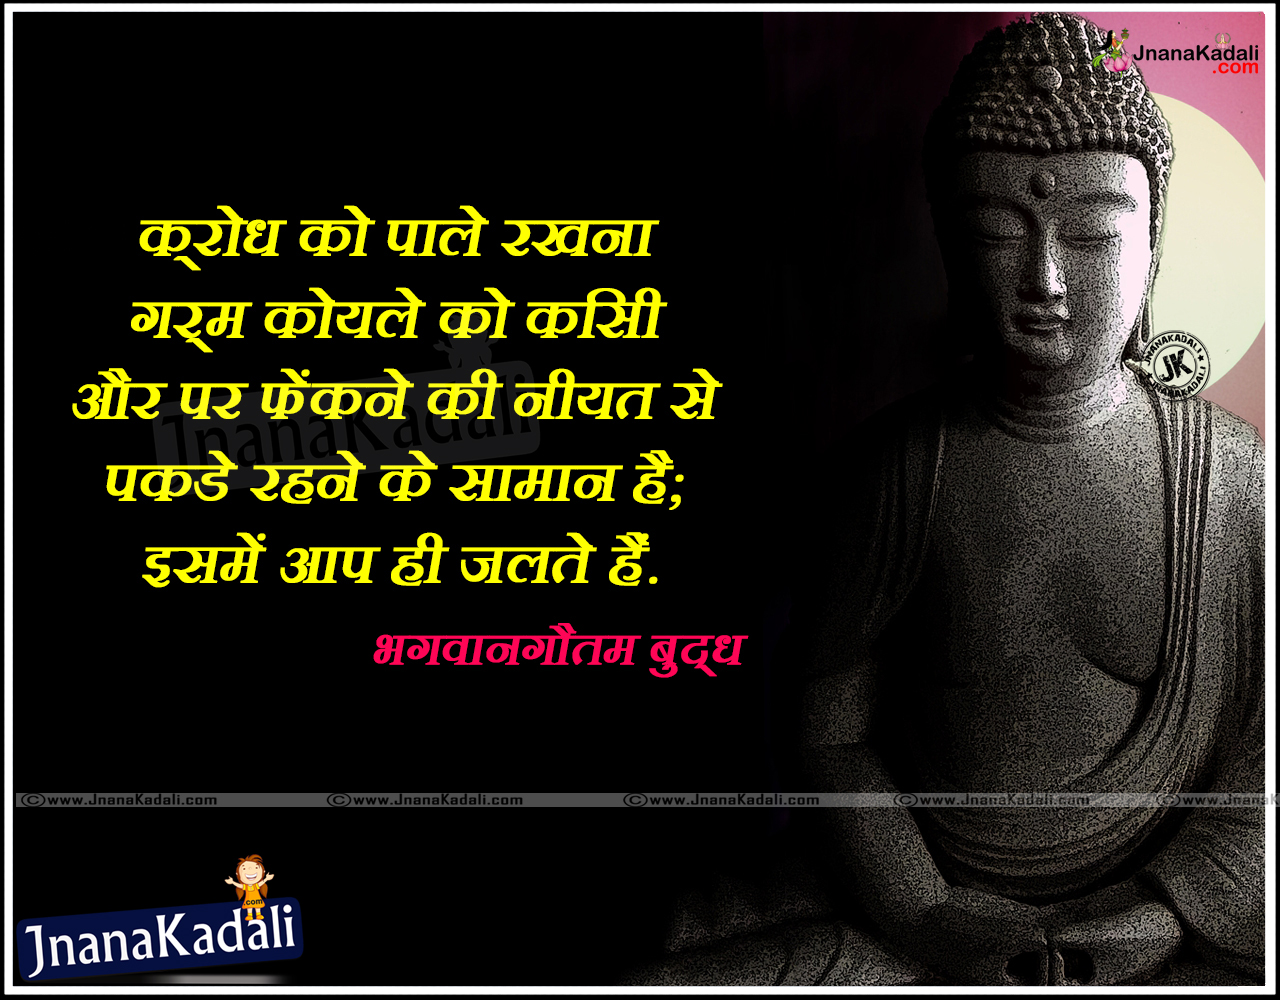 Hindi Nice Inspiring Gautama Buddha Life Quotations Images